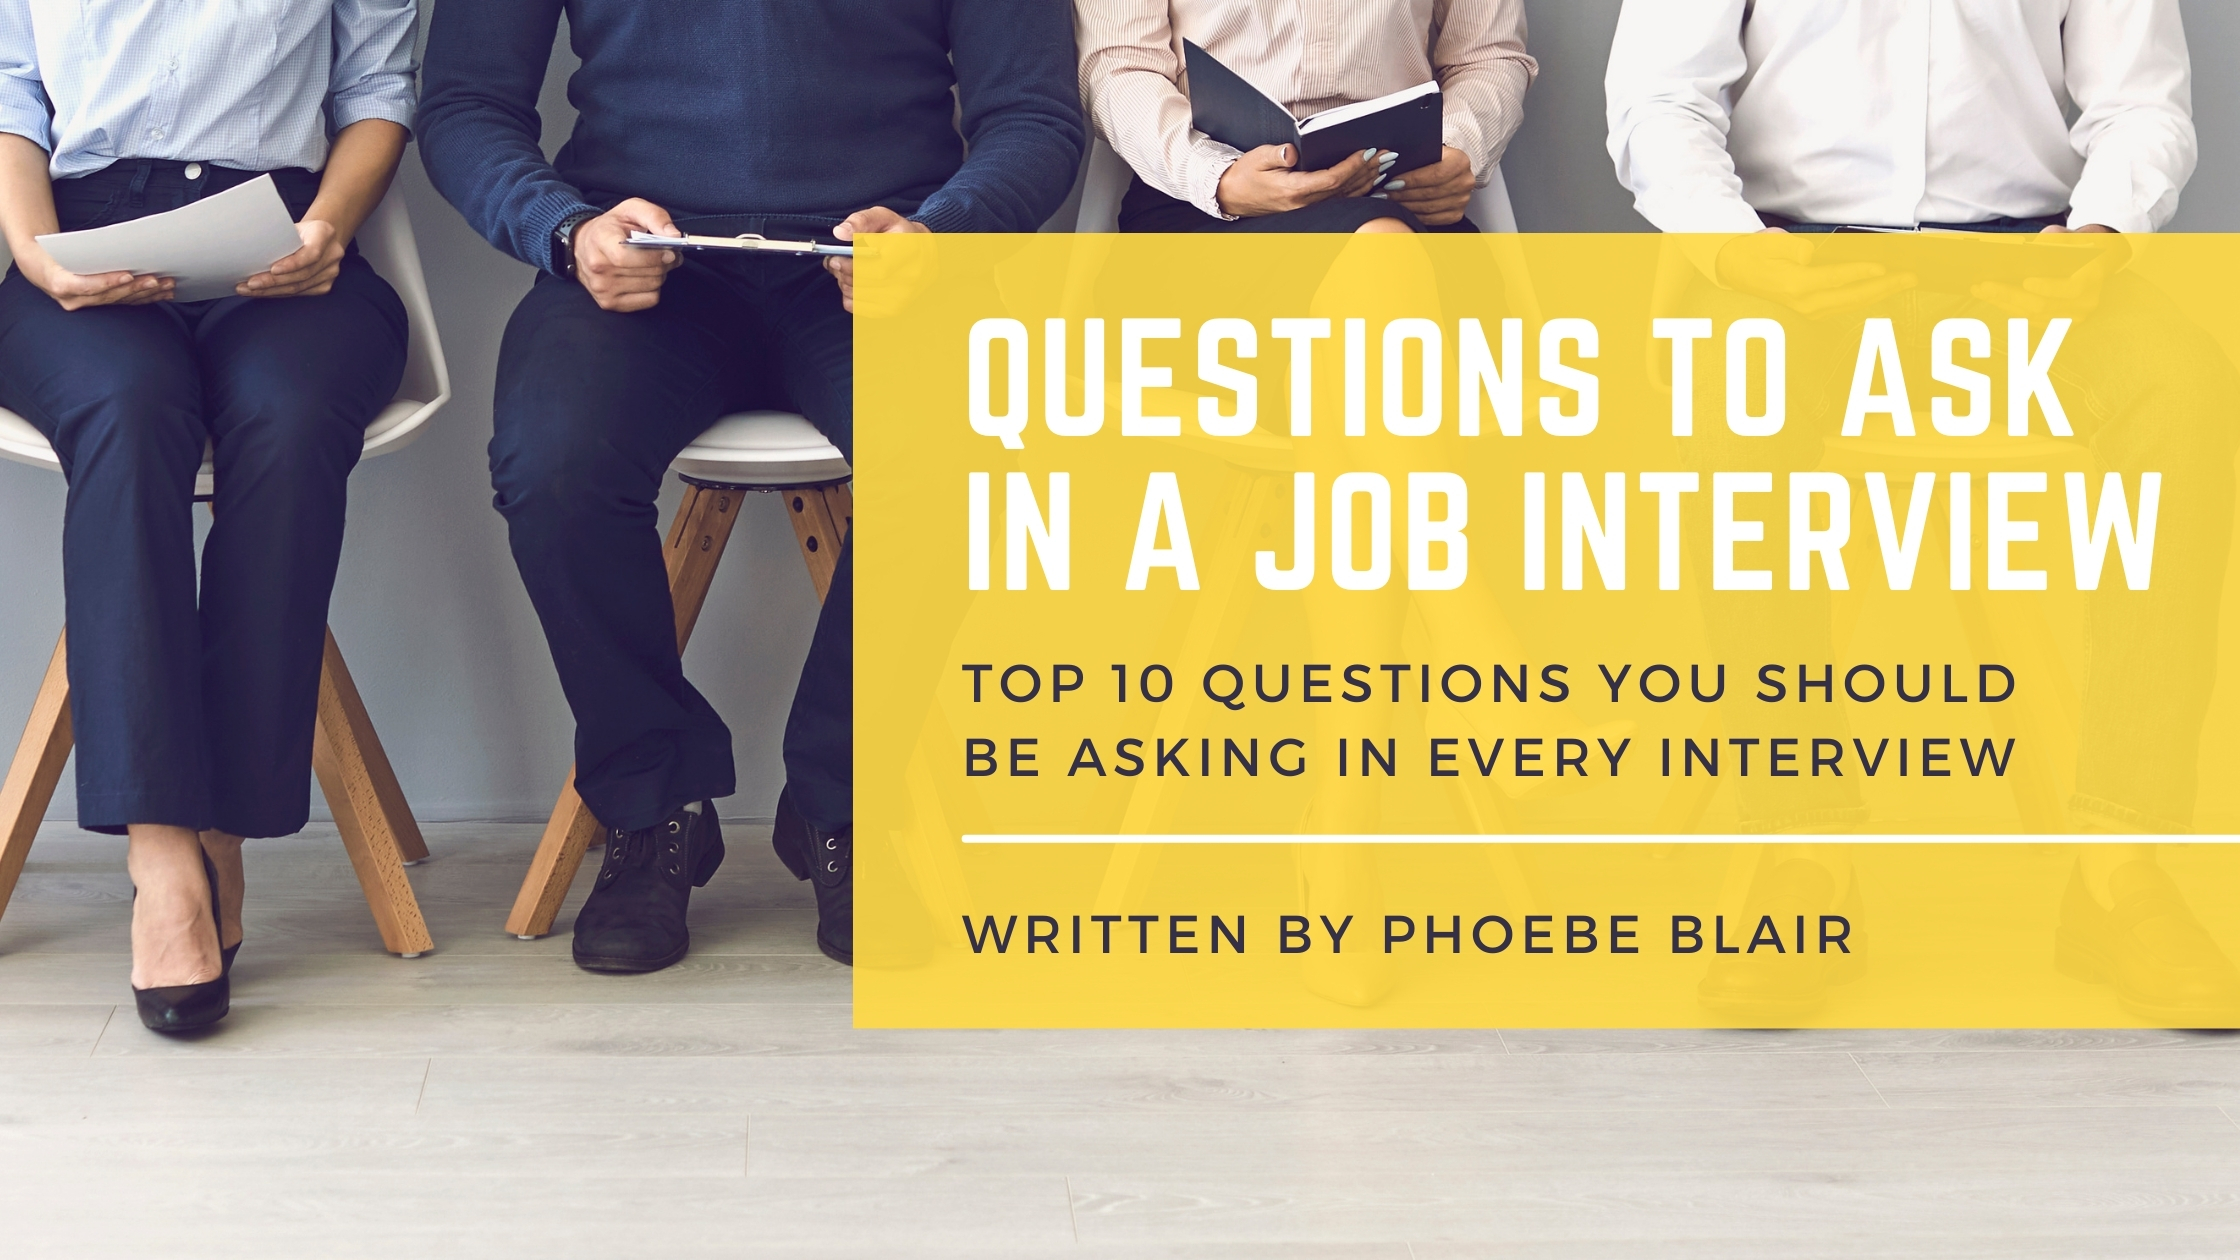 4 people sat in a row on white chairs with wooden legs. All four dressed in shirts and suit trousers. First person is holding a piece of paper, second person is holding a clipboard and their person reading a book. Photograph is from their chest down to their feet. In from of the photograph is a yellow text box which includes 'Questions to Ask in a Job Interview' in large white text. After this in small black text reads 'Top 10 questions you should be asking in every interview, written by Phoebe Blair'.